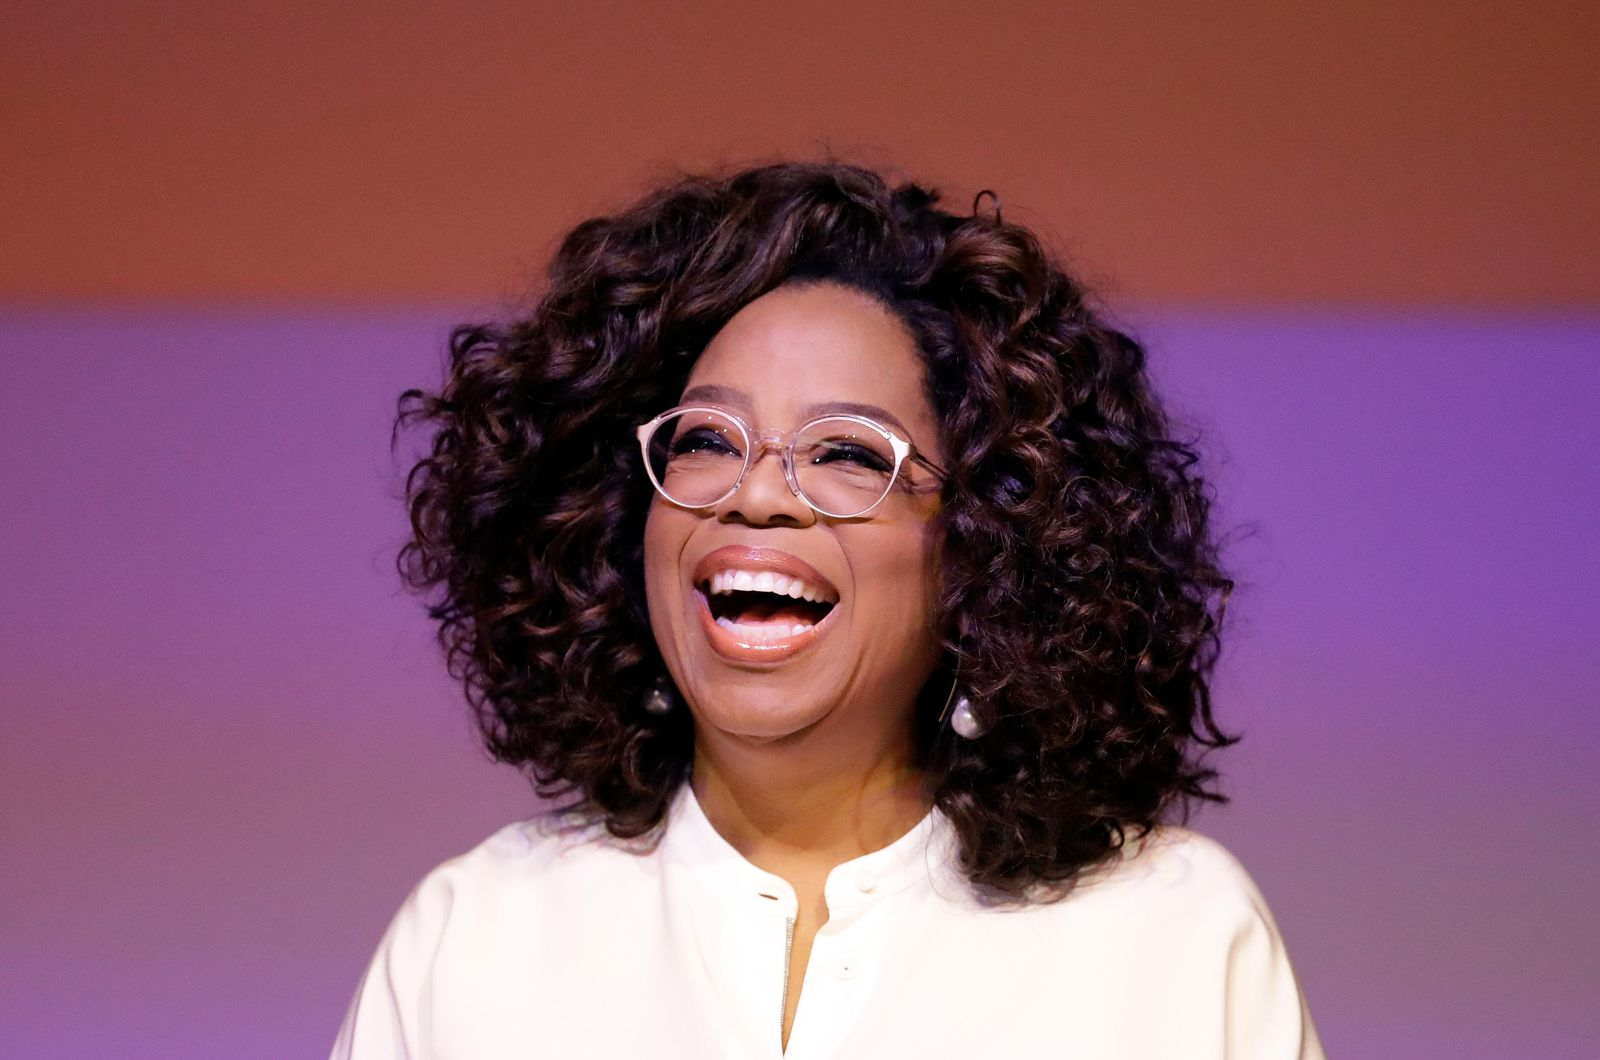 Oprah Winfrey during a tribute to Nelson Mandela and promoting gender equality event at University of Johannesburg in Soweto, South Africa, Thursday, Nov. 29, 2018. Winfrey on Thursday delivered a rousing tribute to Nelson Mandela, a century after he was born. (AP Photo/Themba Hadebe)